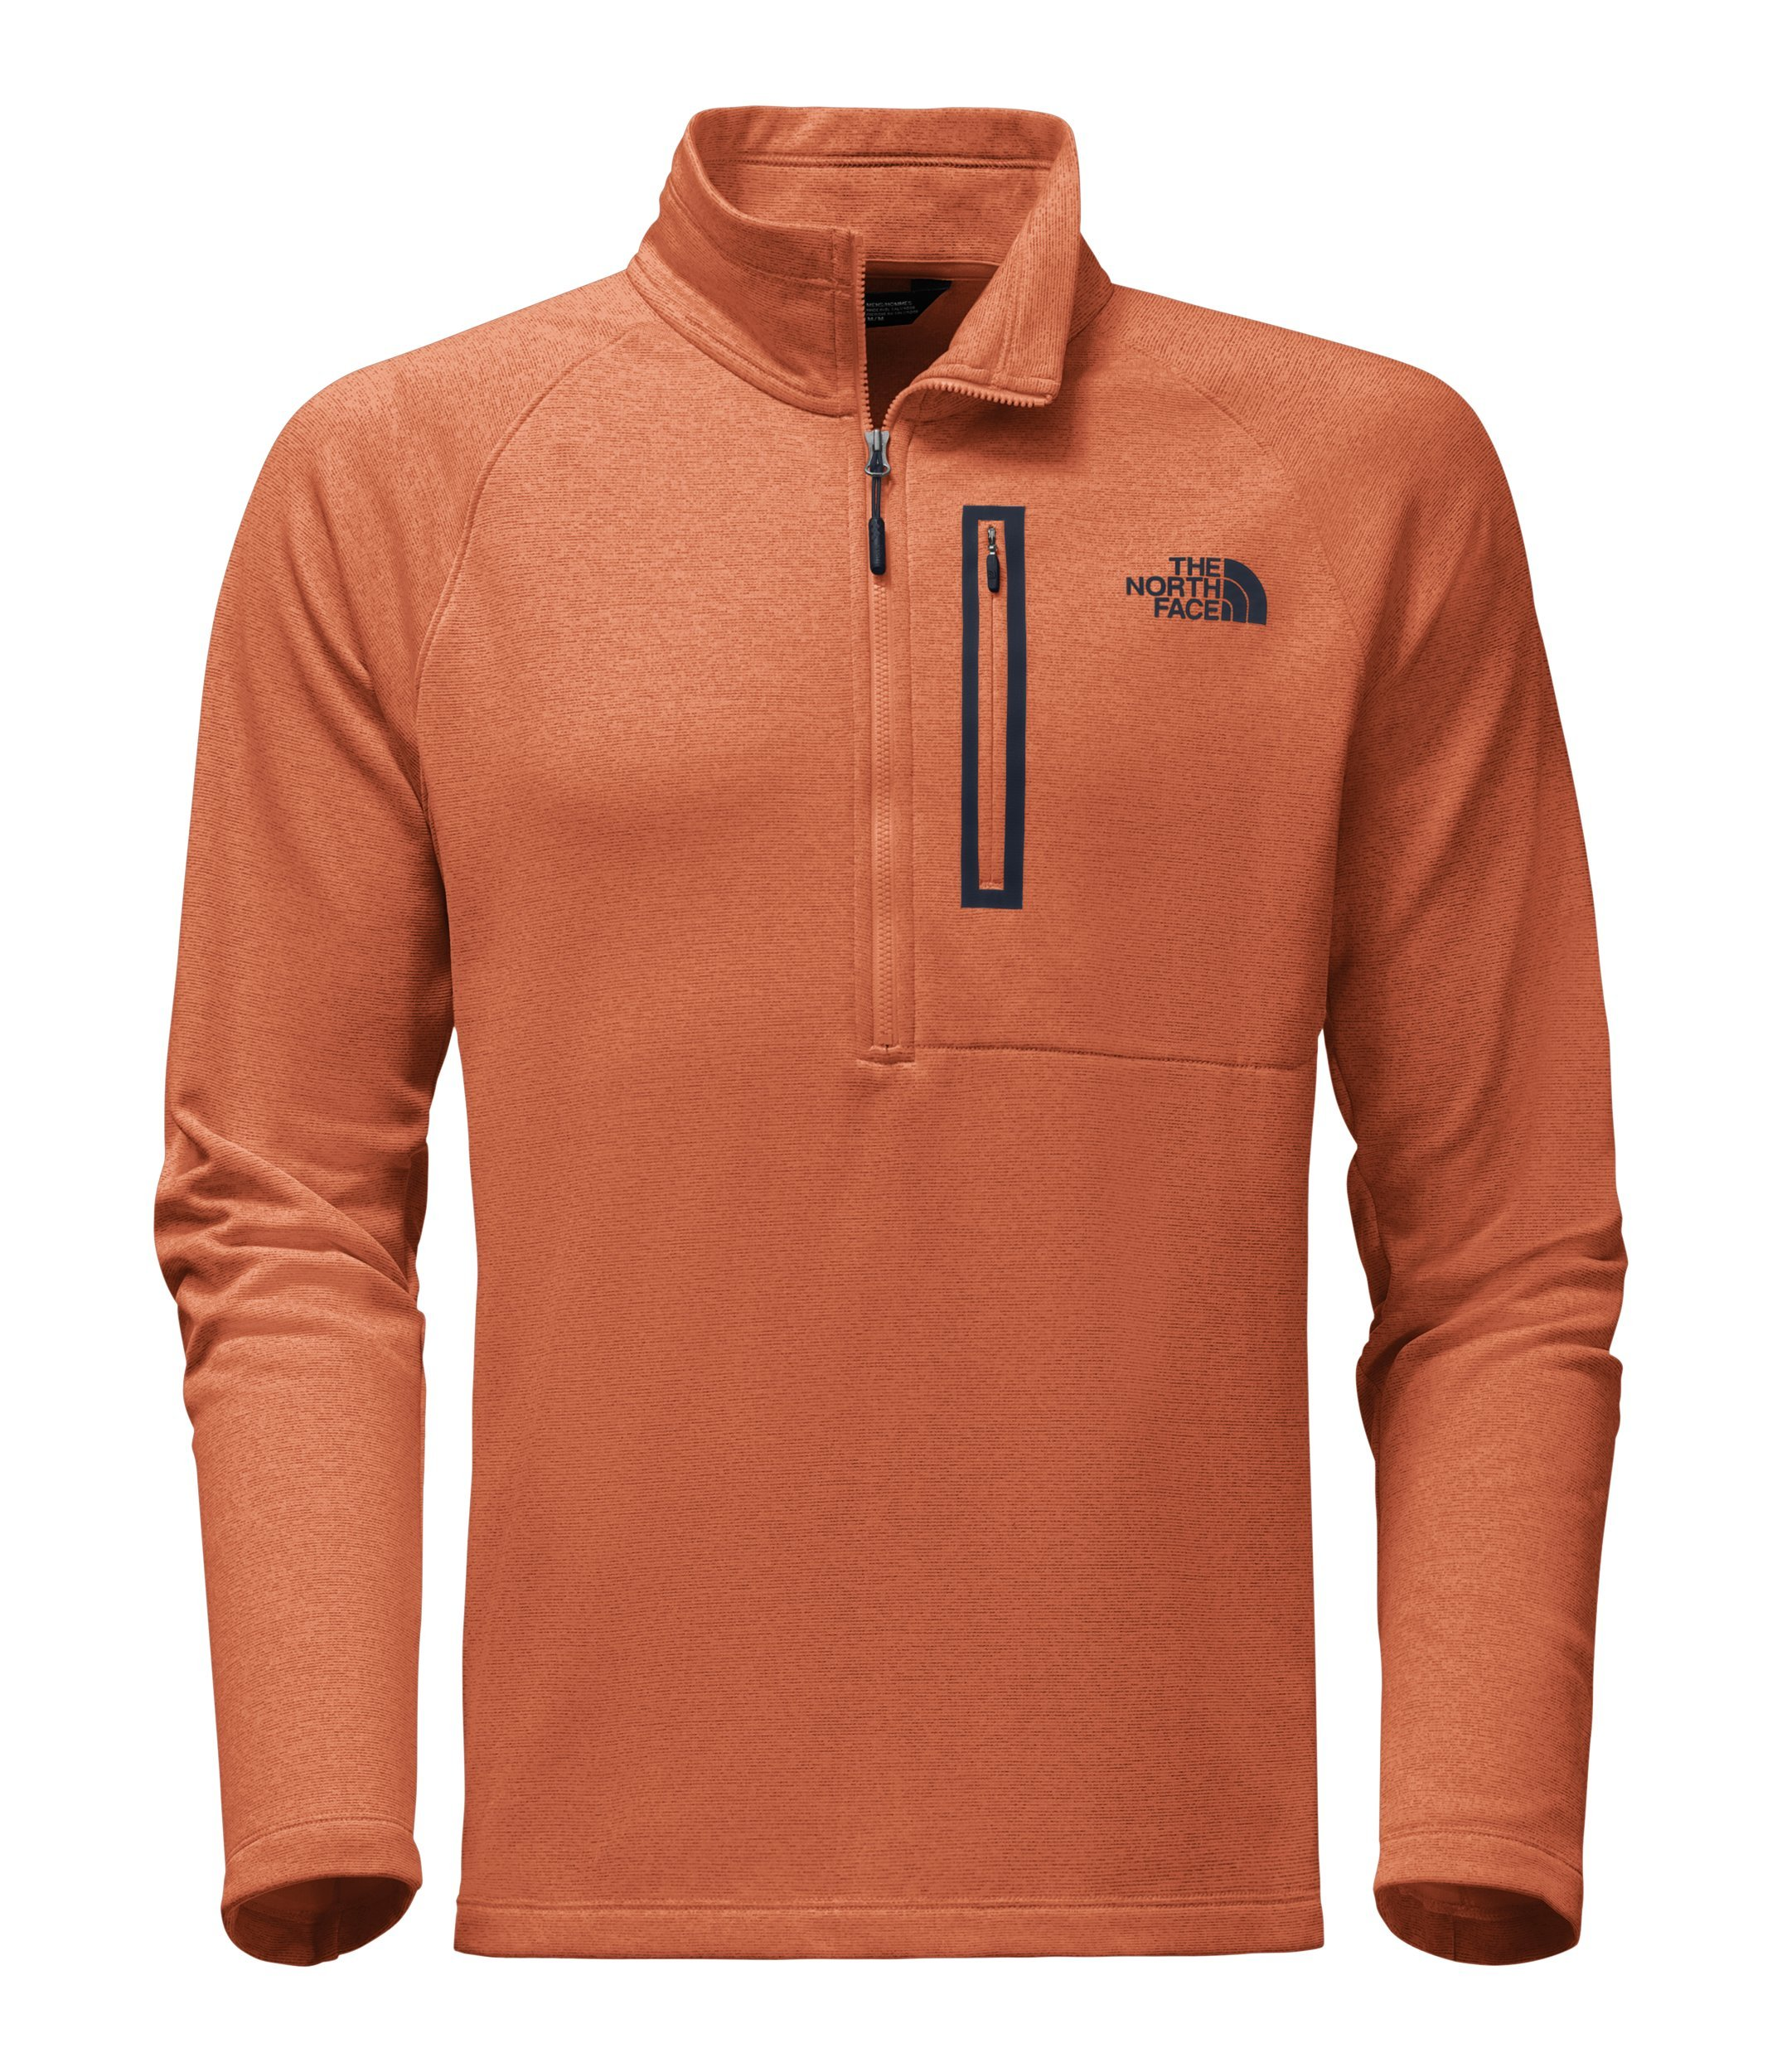 Galleon - The North Face Men s Canyonlands Half Zip - Weathered Orange  Heather - S 019234e4f